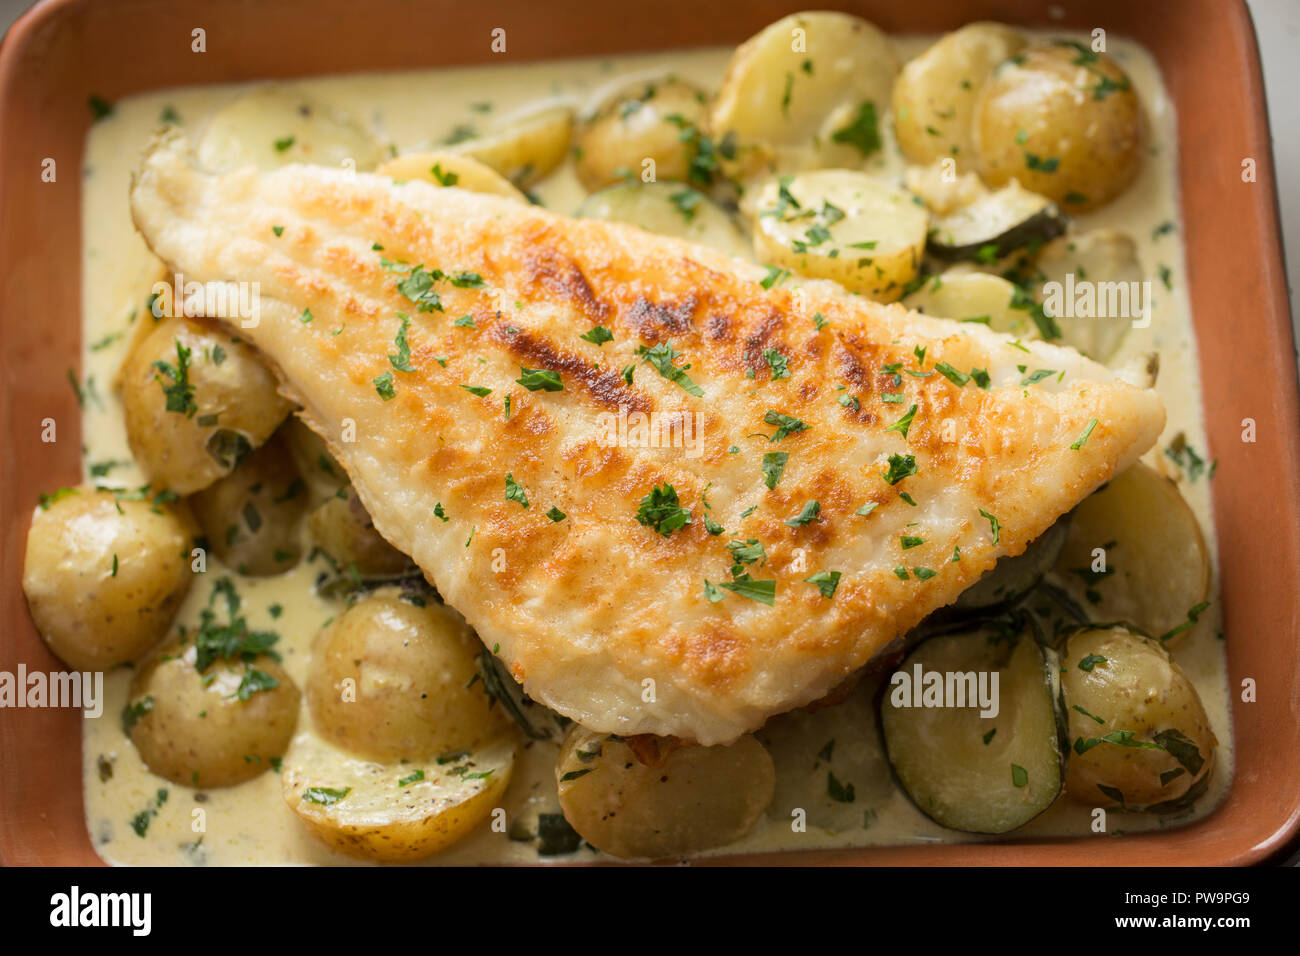 A pollack fillet, Pollachius pollachius, that has been dipped in flour and fried. It is served on a bed of boiled potatoes, fried courgettes with lemo - Stock Image